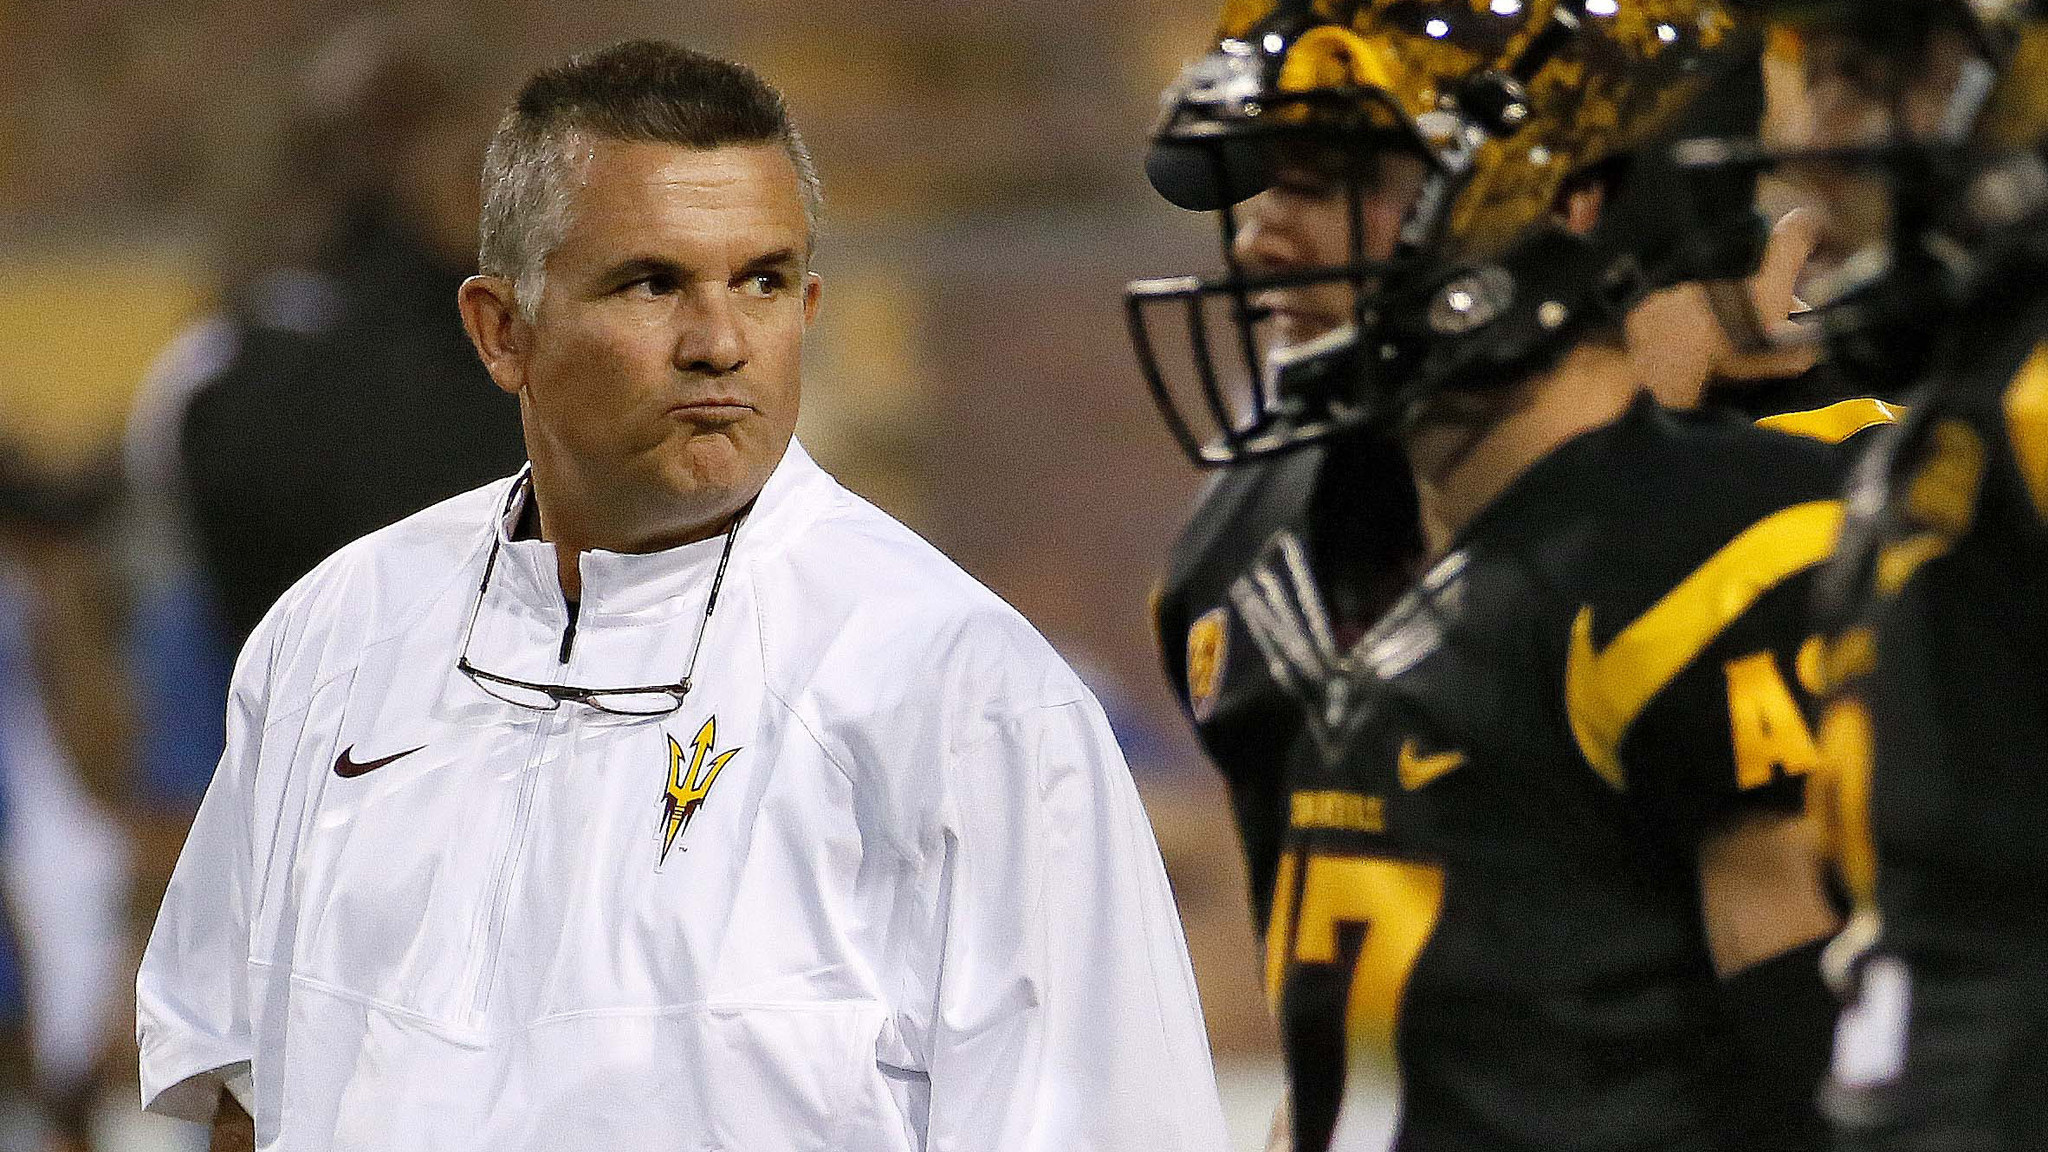 Arizona State Coach Todd Graham compliments USC players